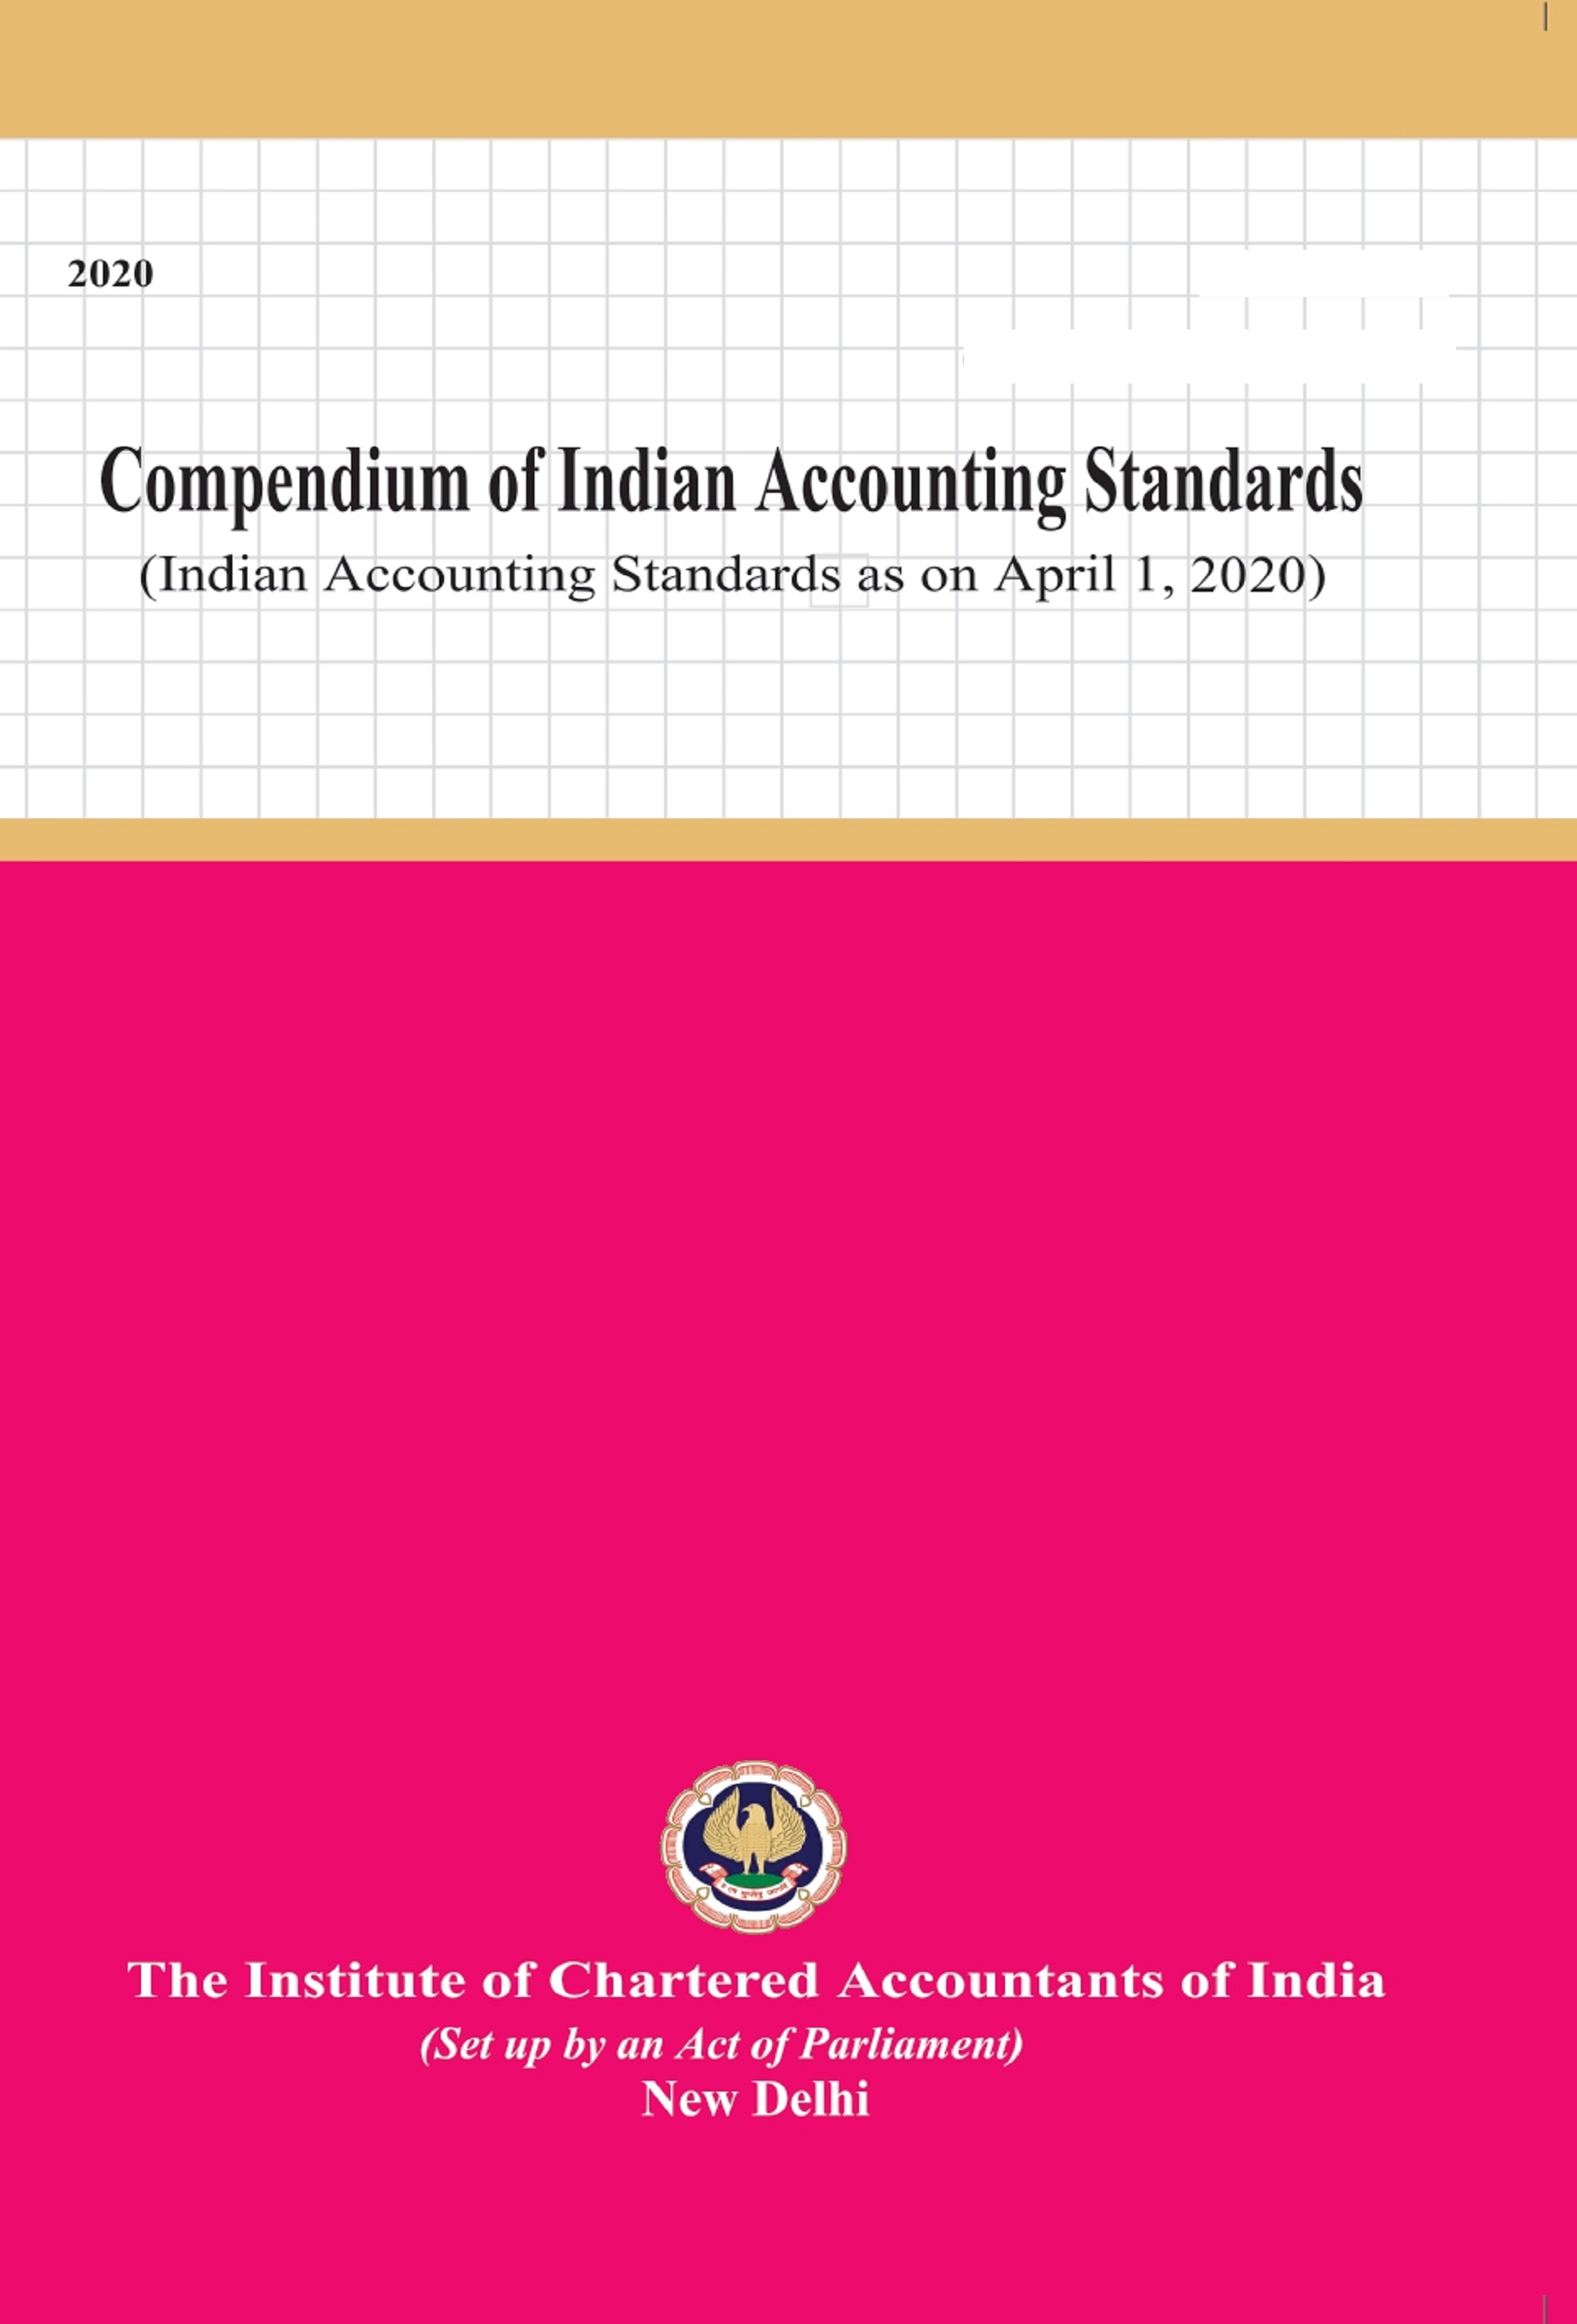 Compendium of Indian Accounting Standards (Indian Accounting Standards as on April 1, 2020) Volume: I&II